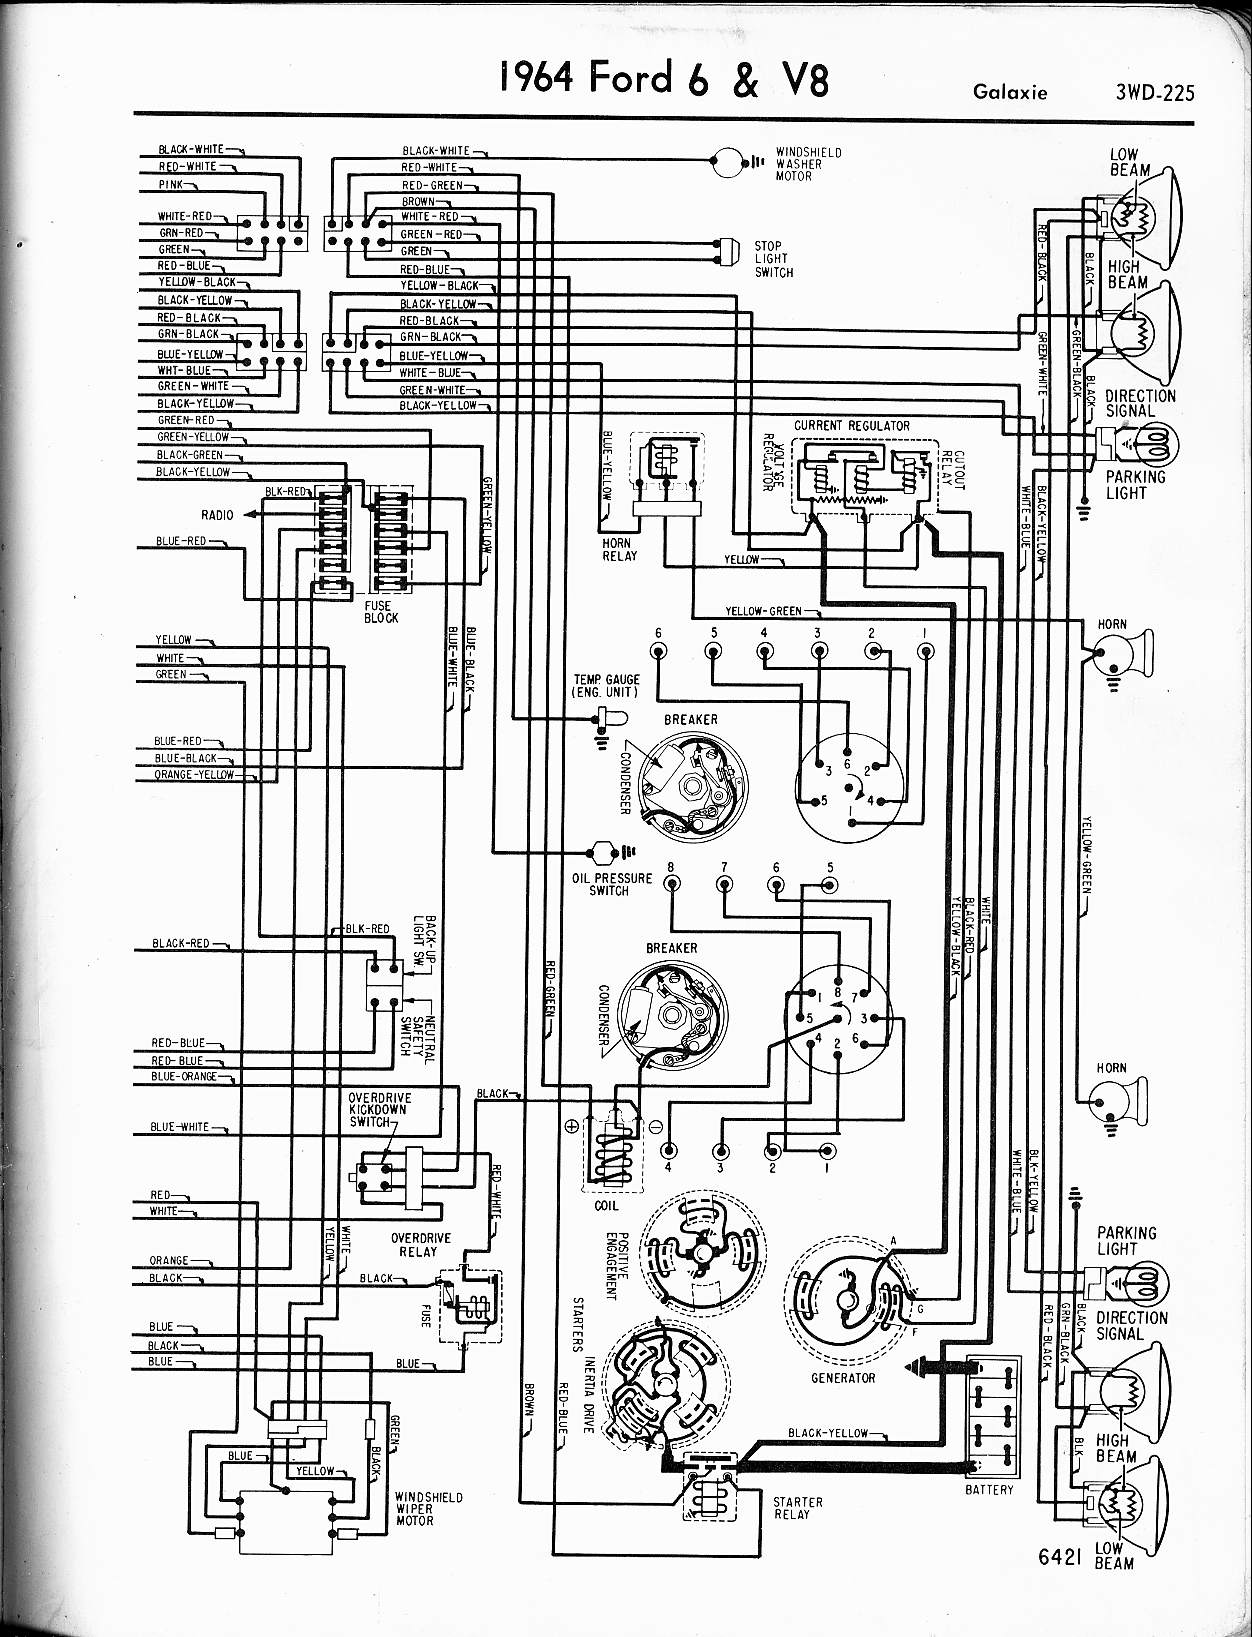 MWire5765 225 64 falcon wiring diagram 64 comet ignition wiring \u2022 wiring 1965 ford falcon wiring diagram at aneh.co